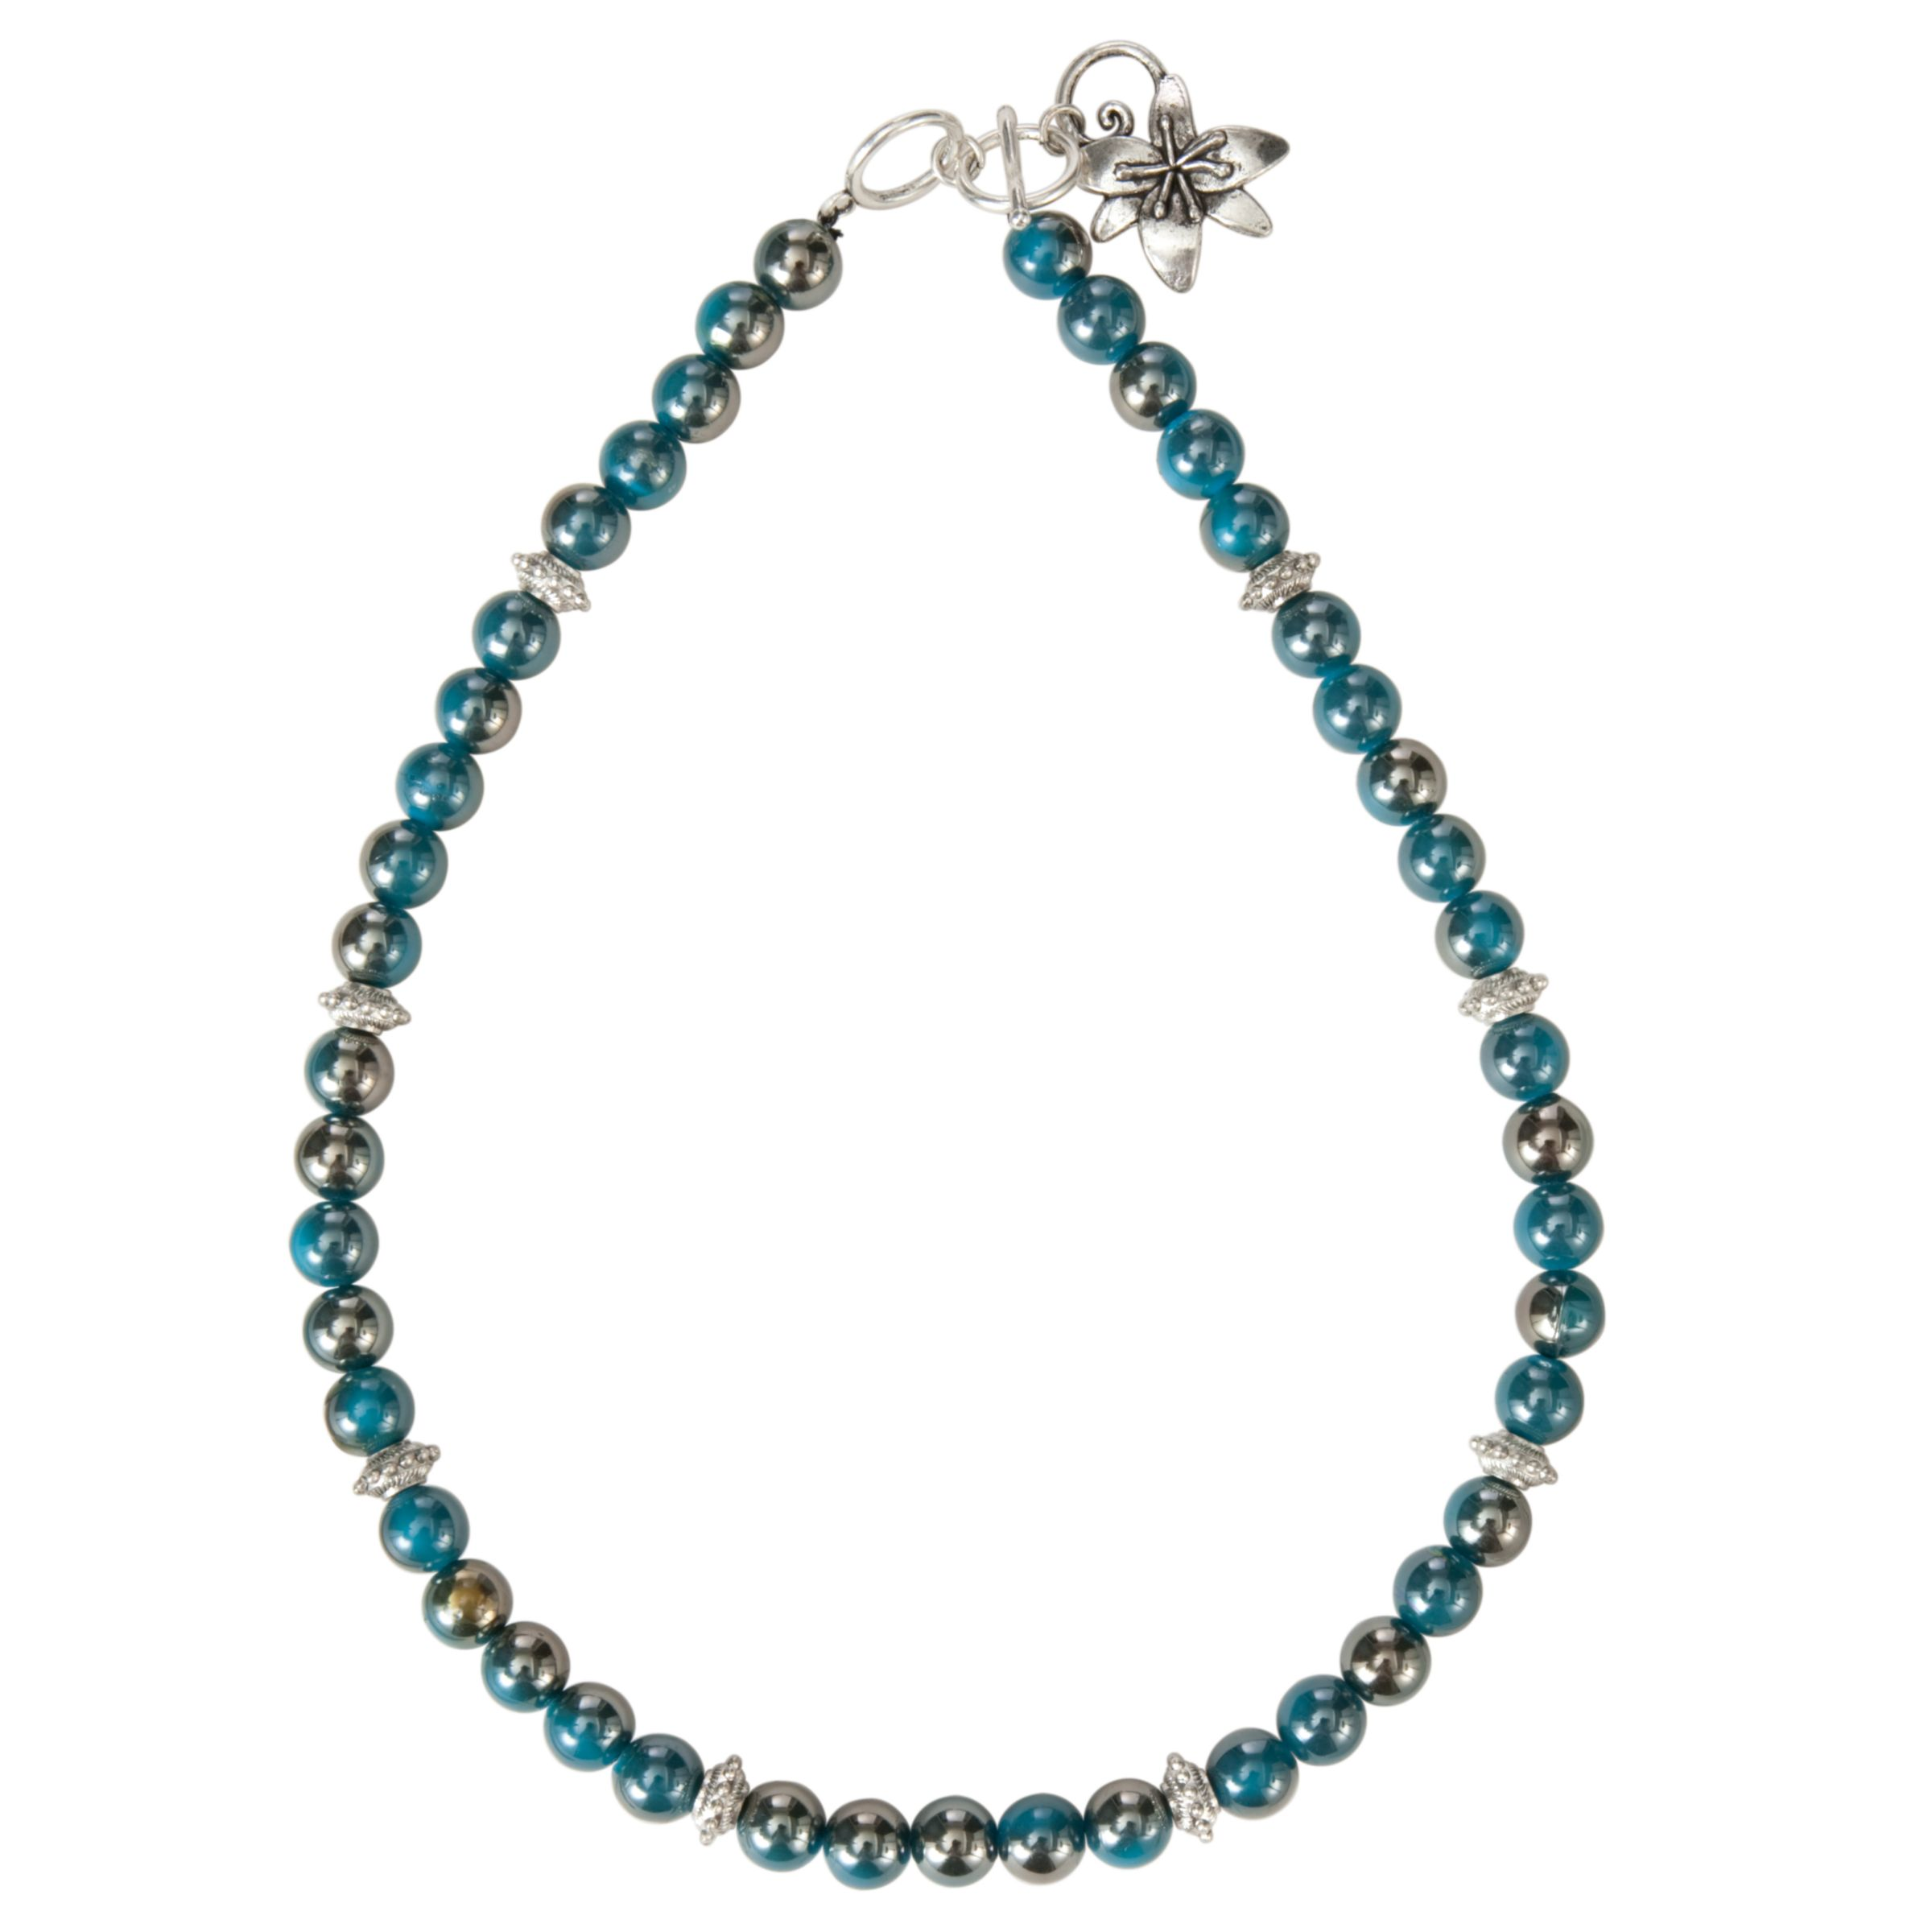 One Button Pearlised Beads Flower T-Bar Necklace, Teal